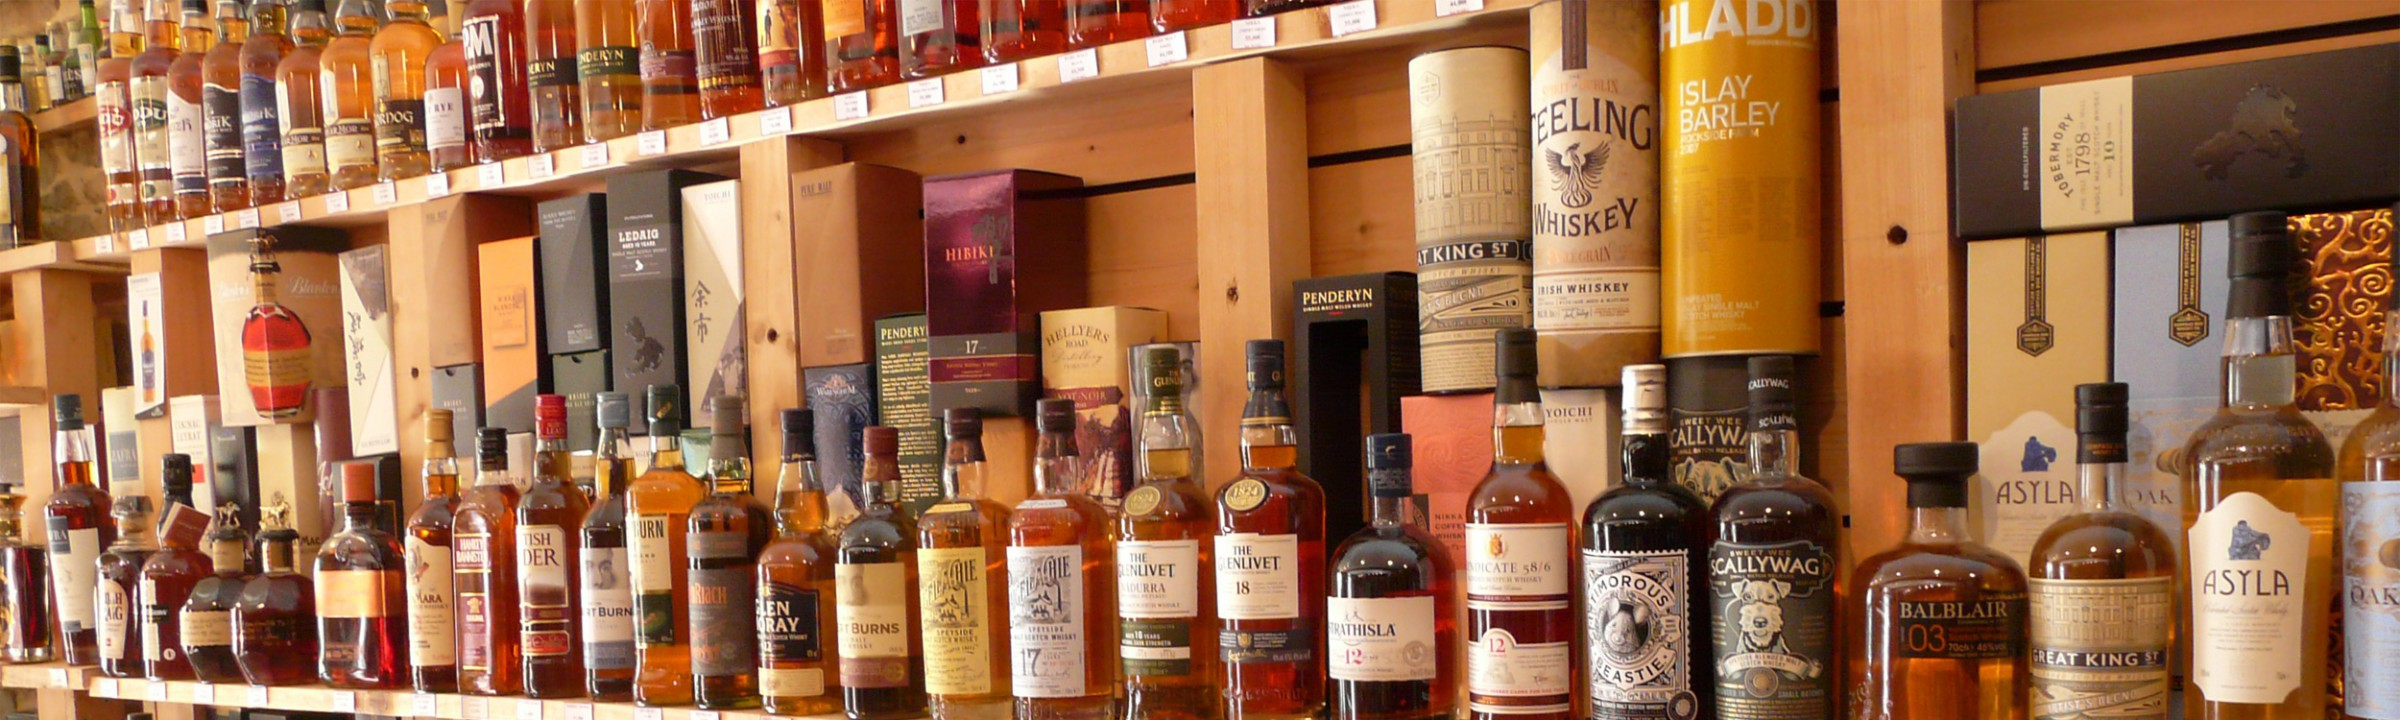 cropped-diaporama_whiskies.jpg